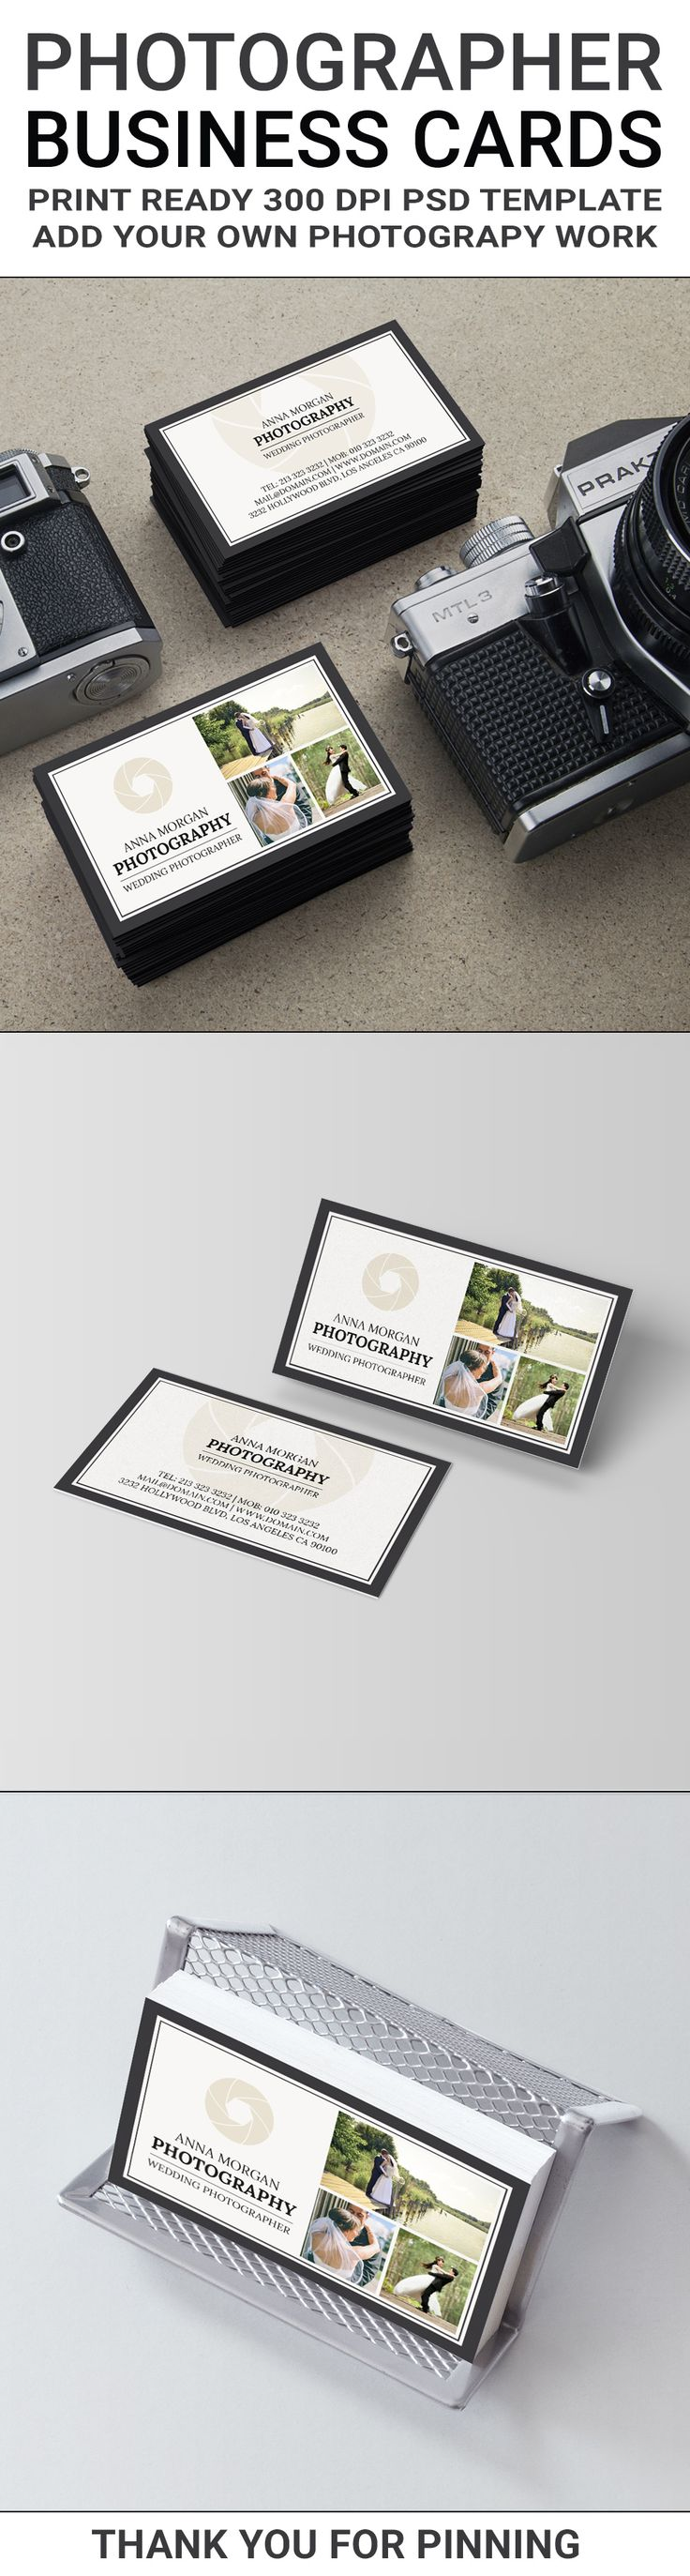 An elegant two sided business cards template for photographers. This business card design offers you the ability to add your own photography work to the template. While this template is setup for wedding photographers, it will work perfectly for any other area of photography, such as portrait or landscape photography for example. Template includes the shutter logo and three (3) wedding photographs, which can be replaced with your own or used as is. Print ready, downloadable layered PSD…